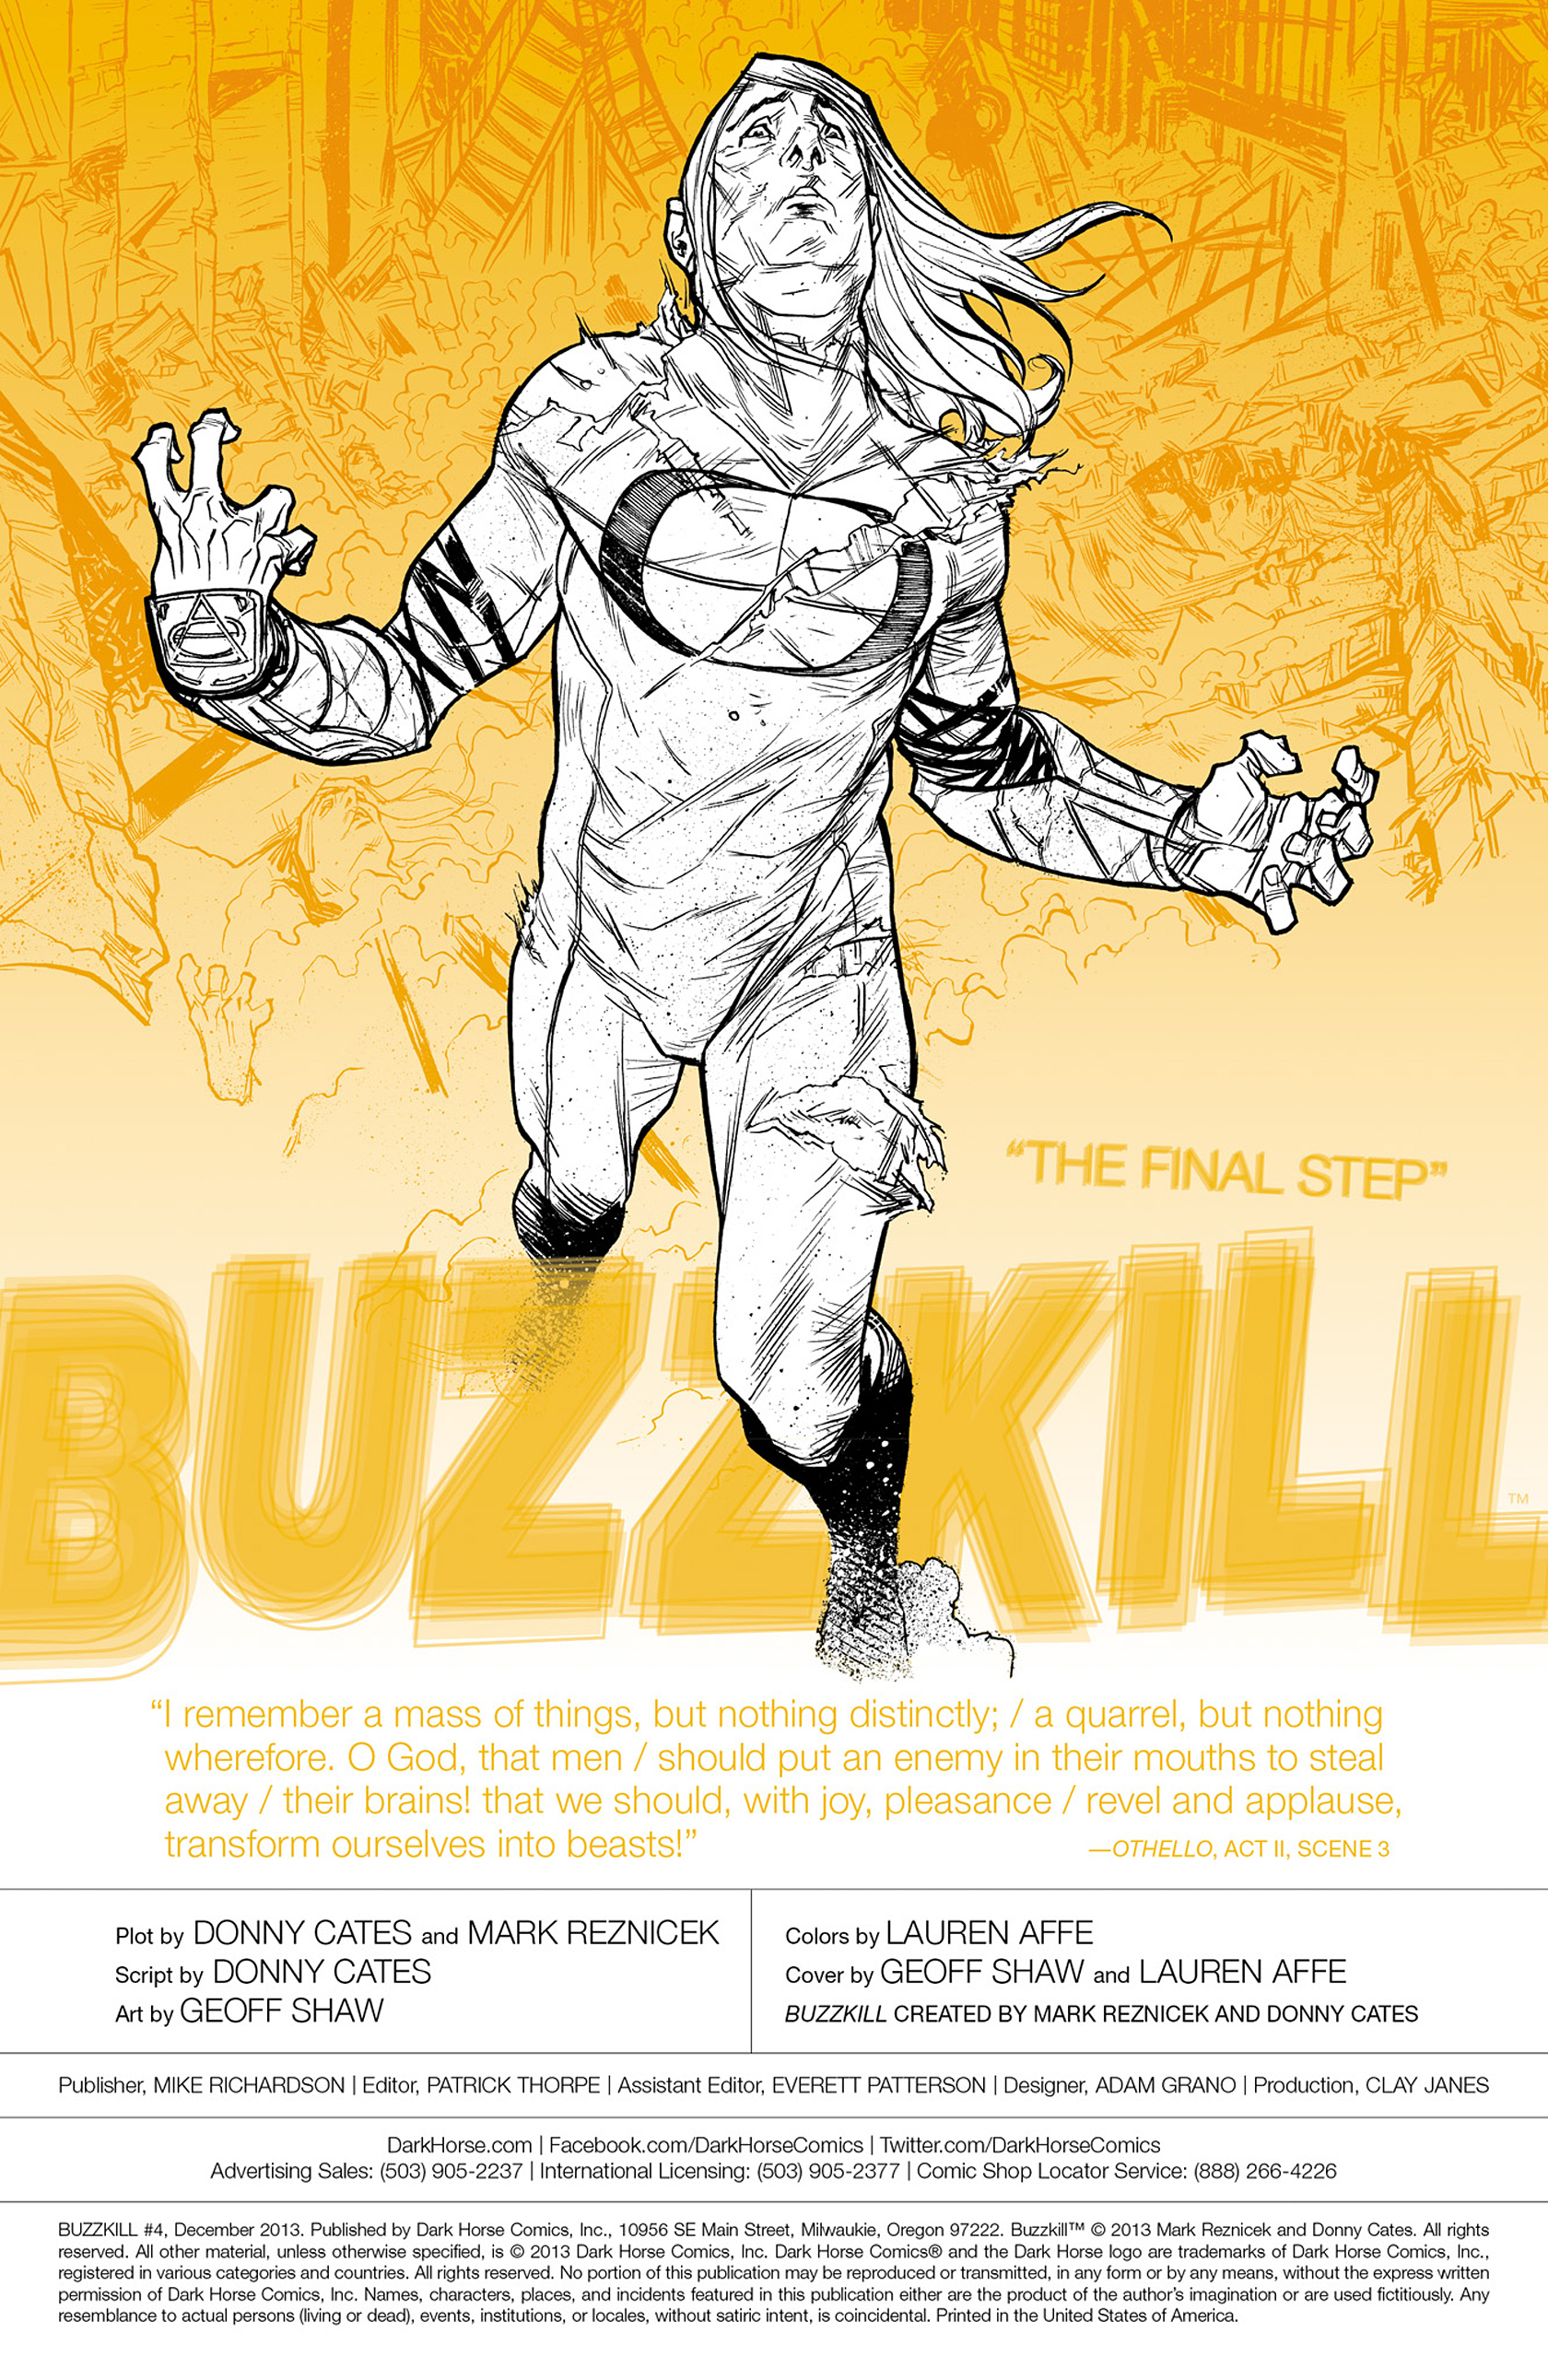 Read online Buzzkill comic -  Issue #4 - 2